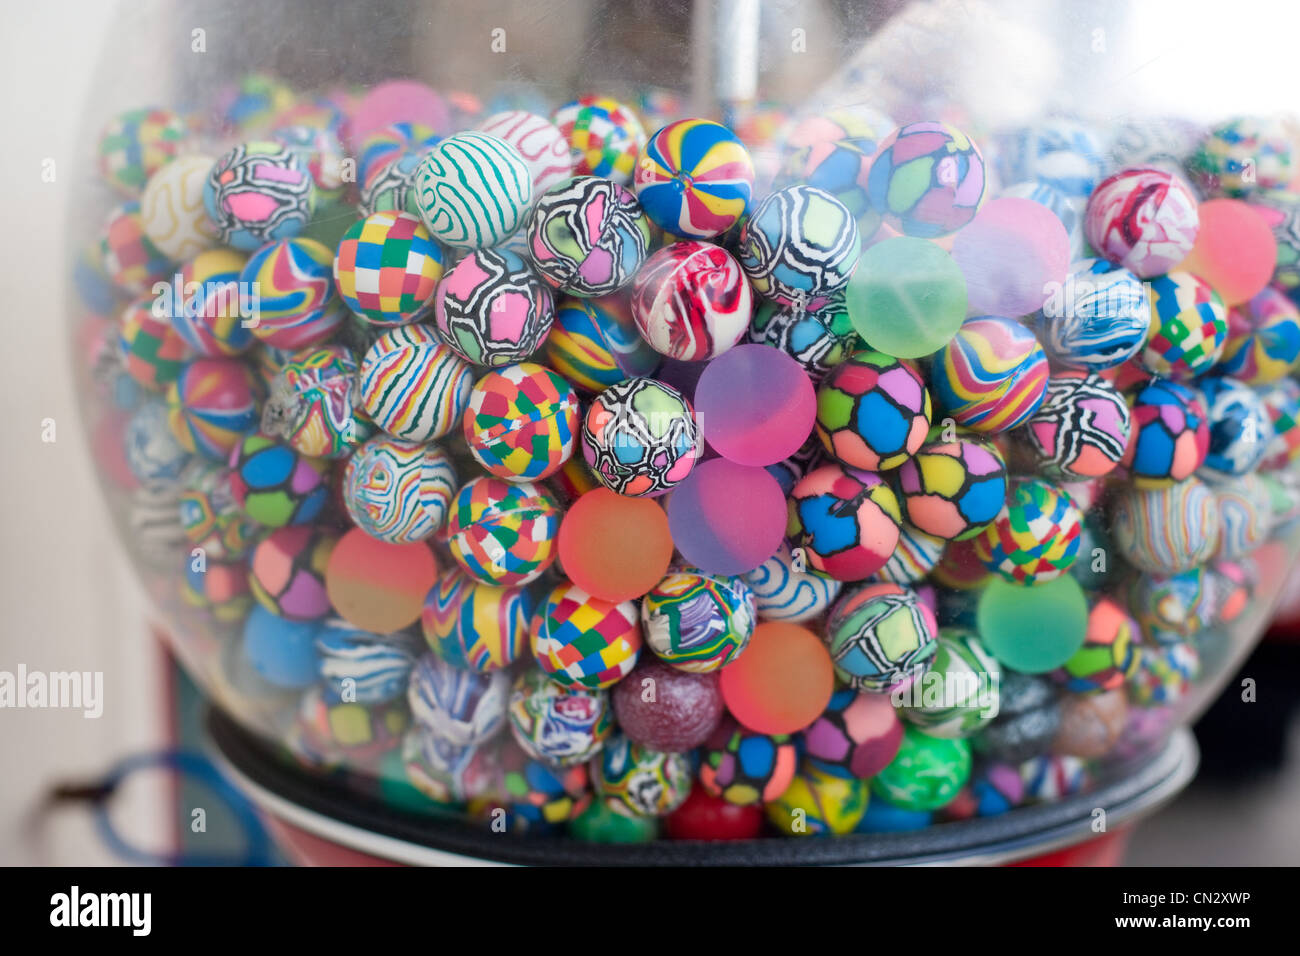 Colorful balls in vending machine - Stock Image